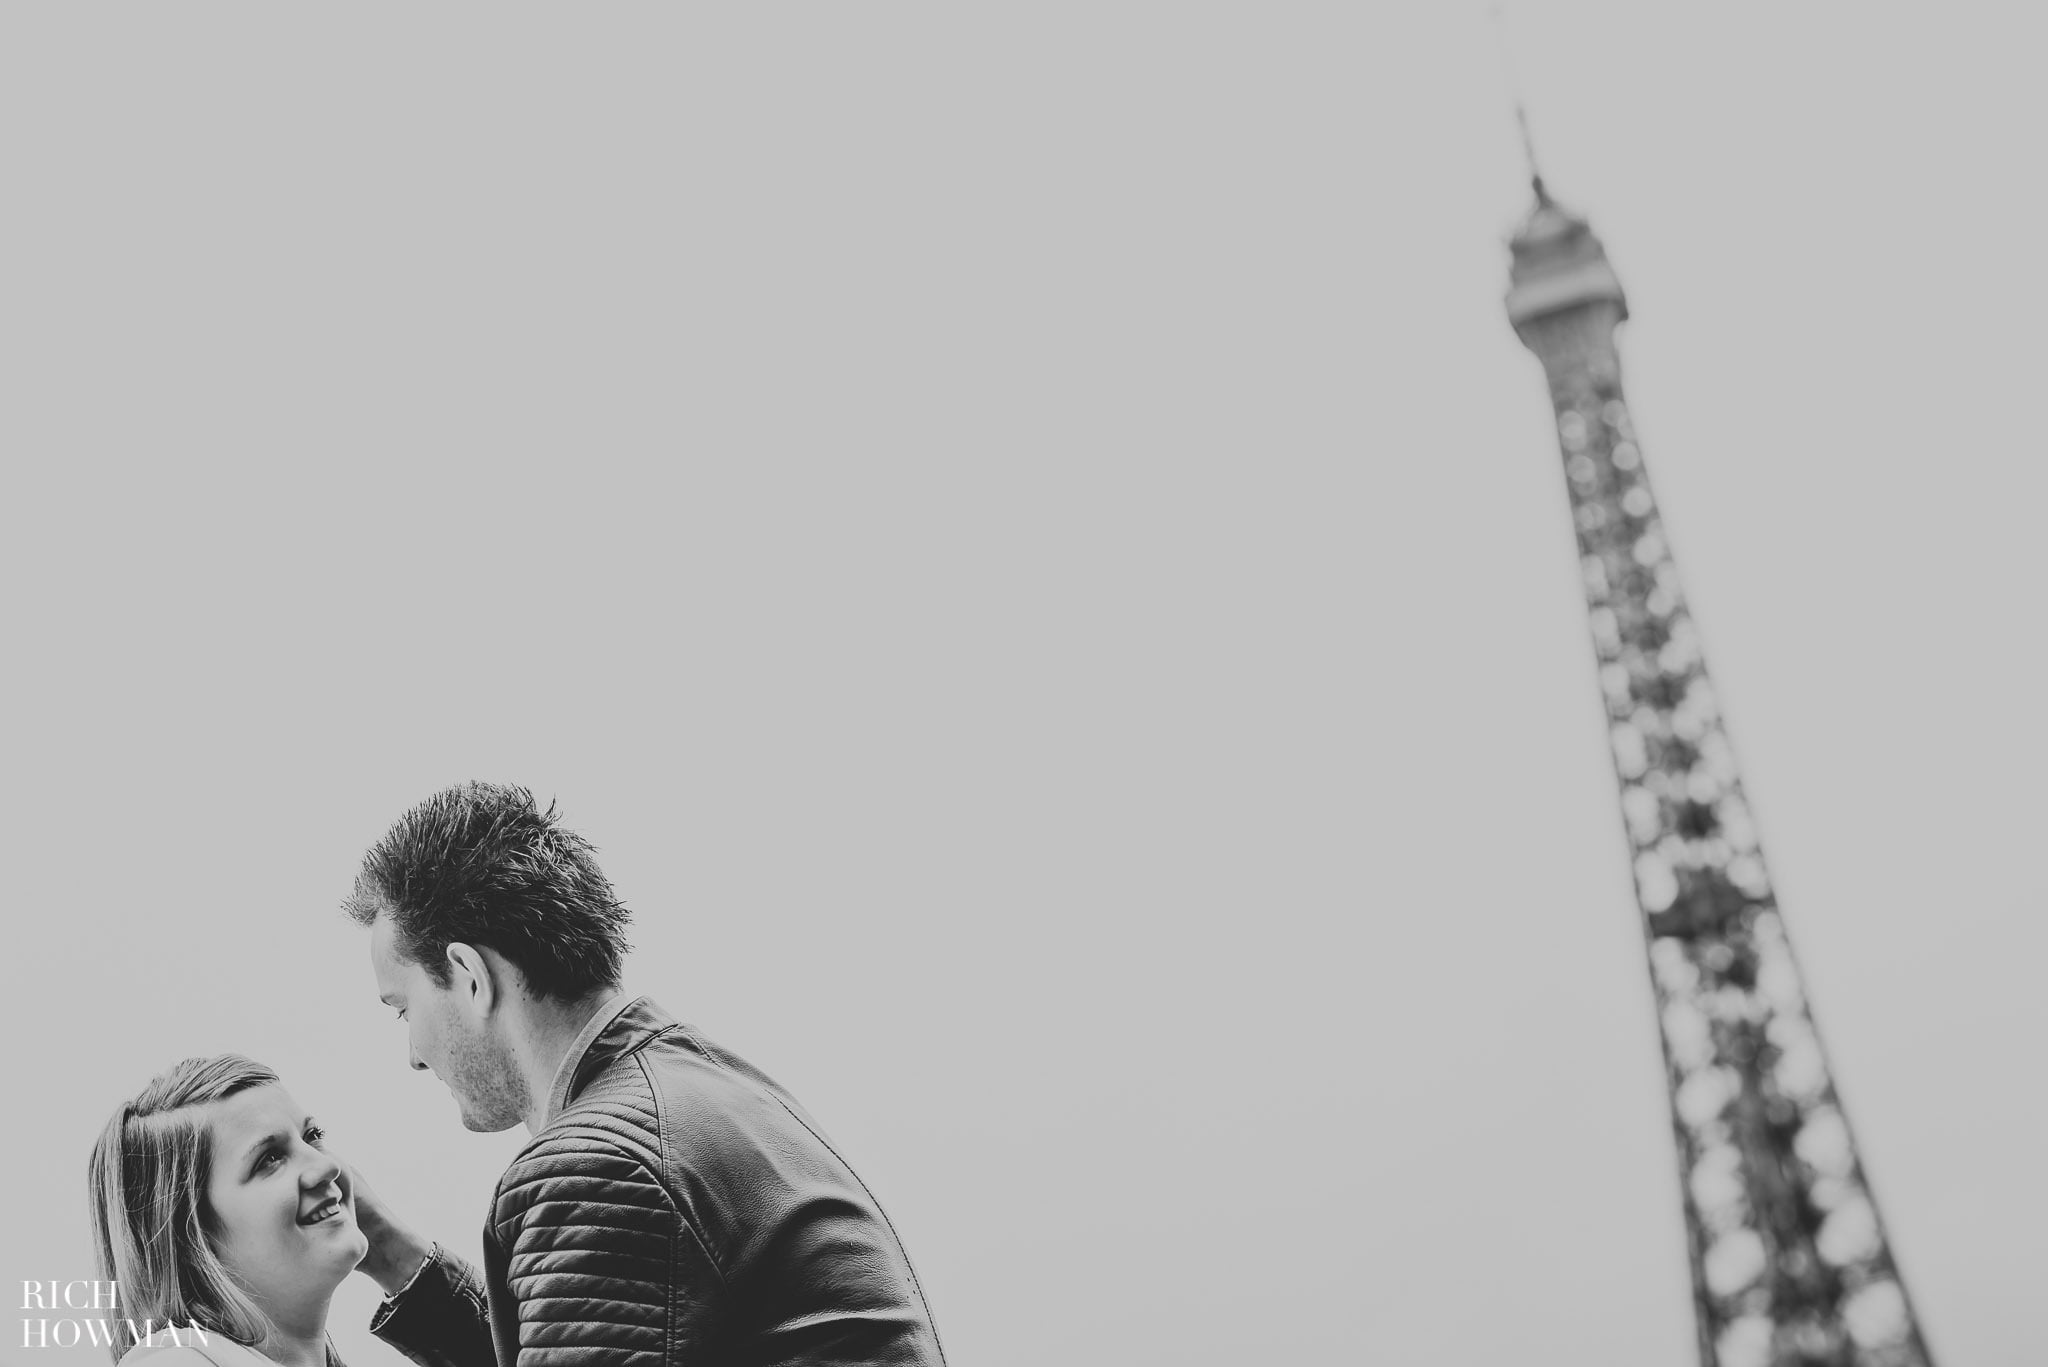 Black and white photograph of a couple at the Eiffel Tower, Paris